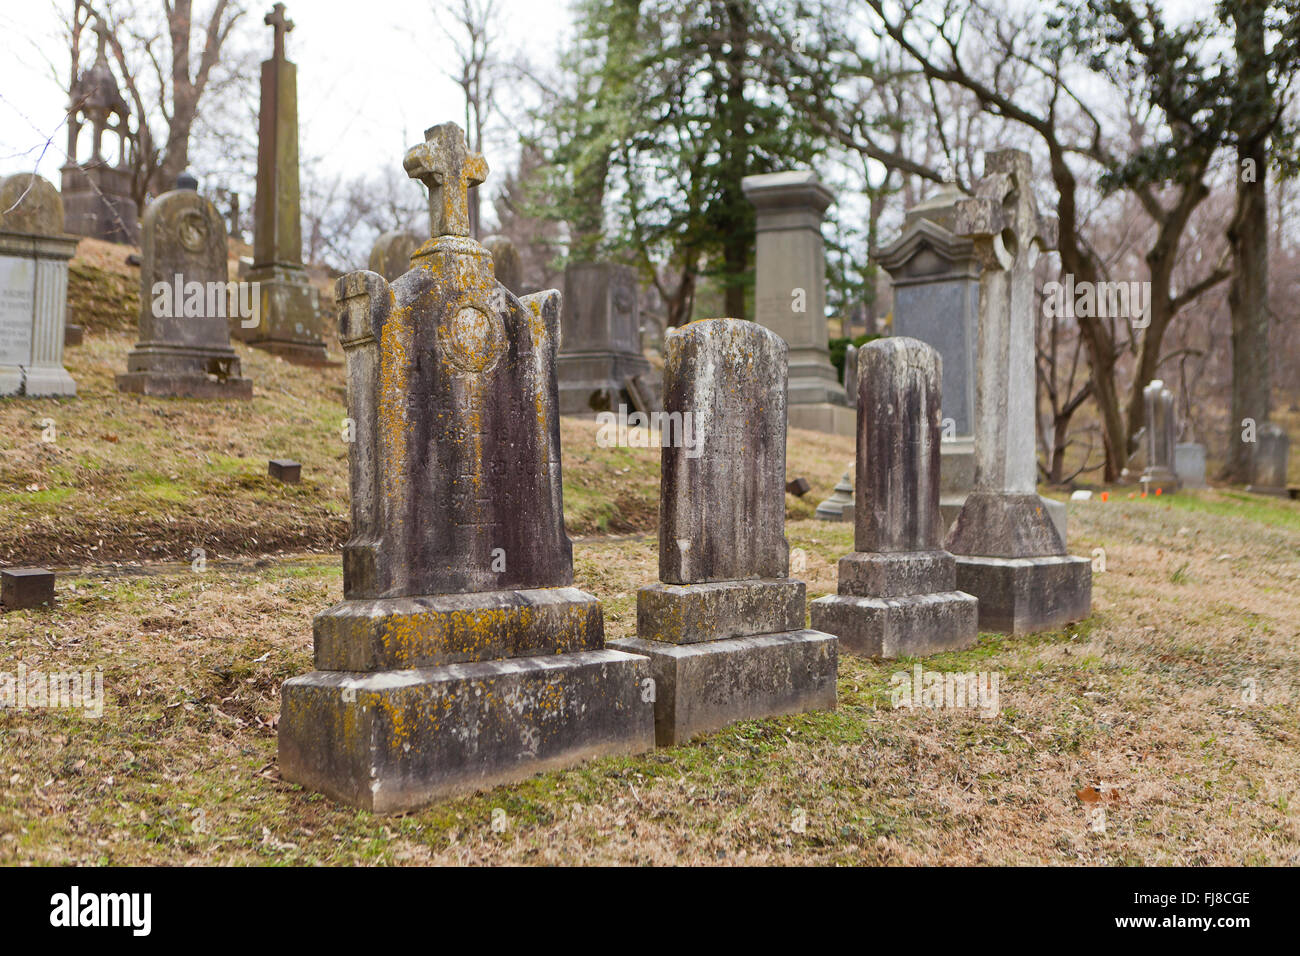 Old gravestones at Oak Hill Cemetery, Georgetown - Washington, DC USA - Stock Image